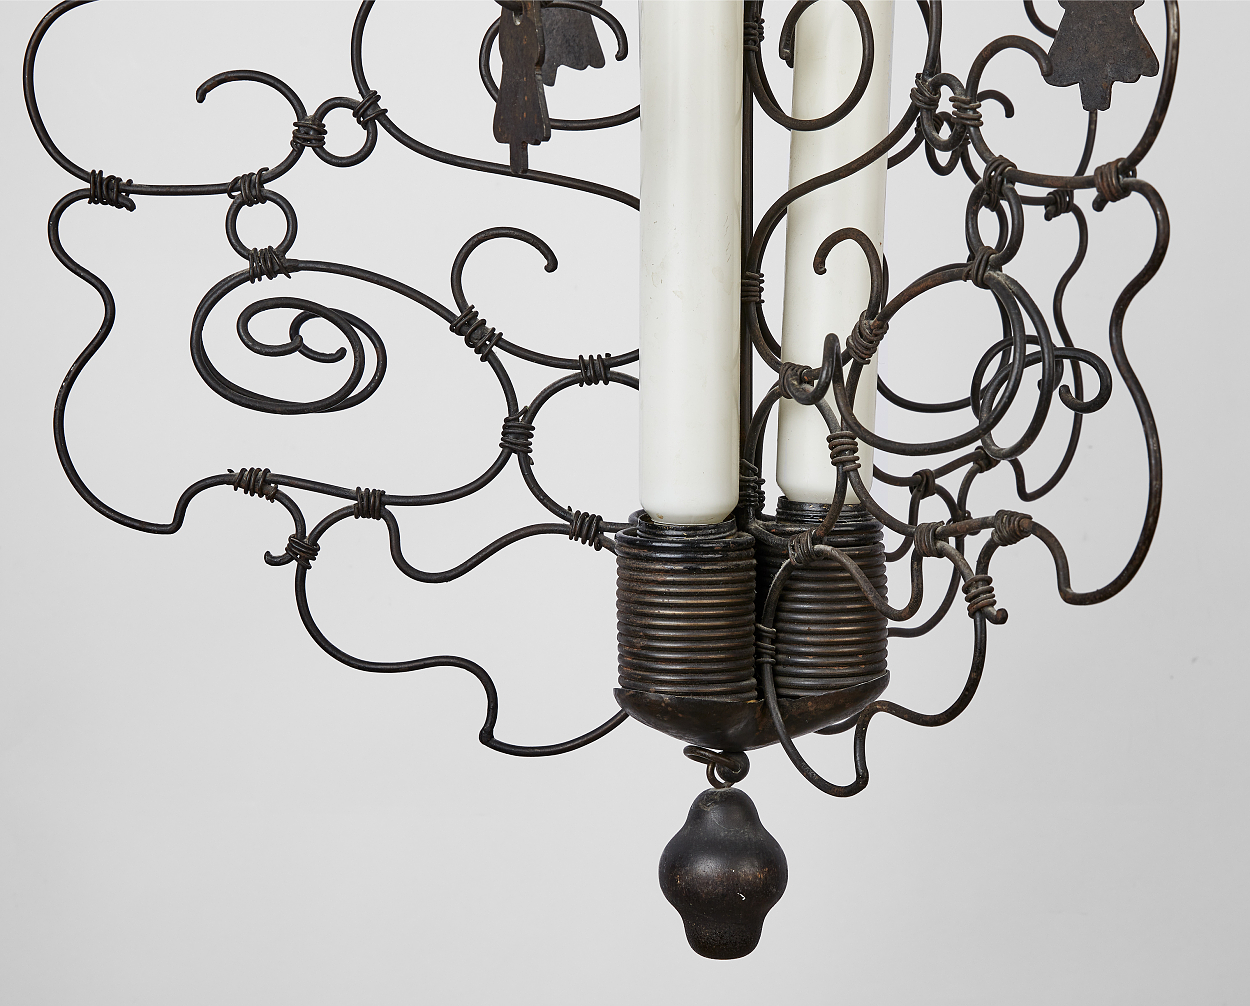 A ceiling lamp attributed to Carl Bergsten